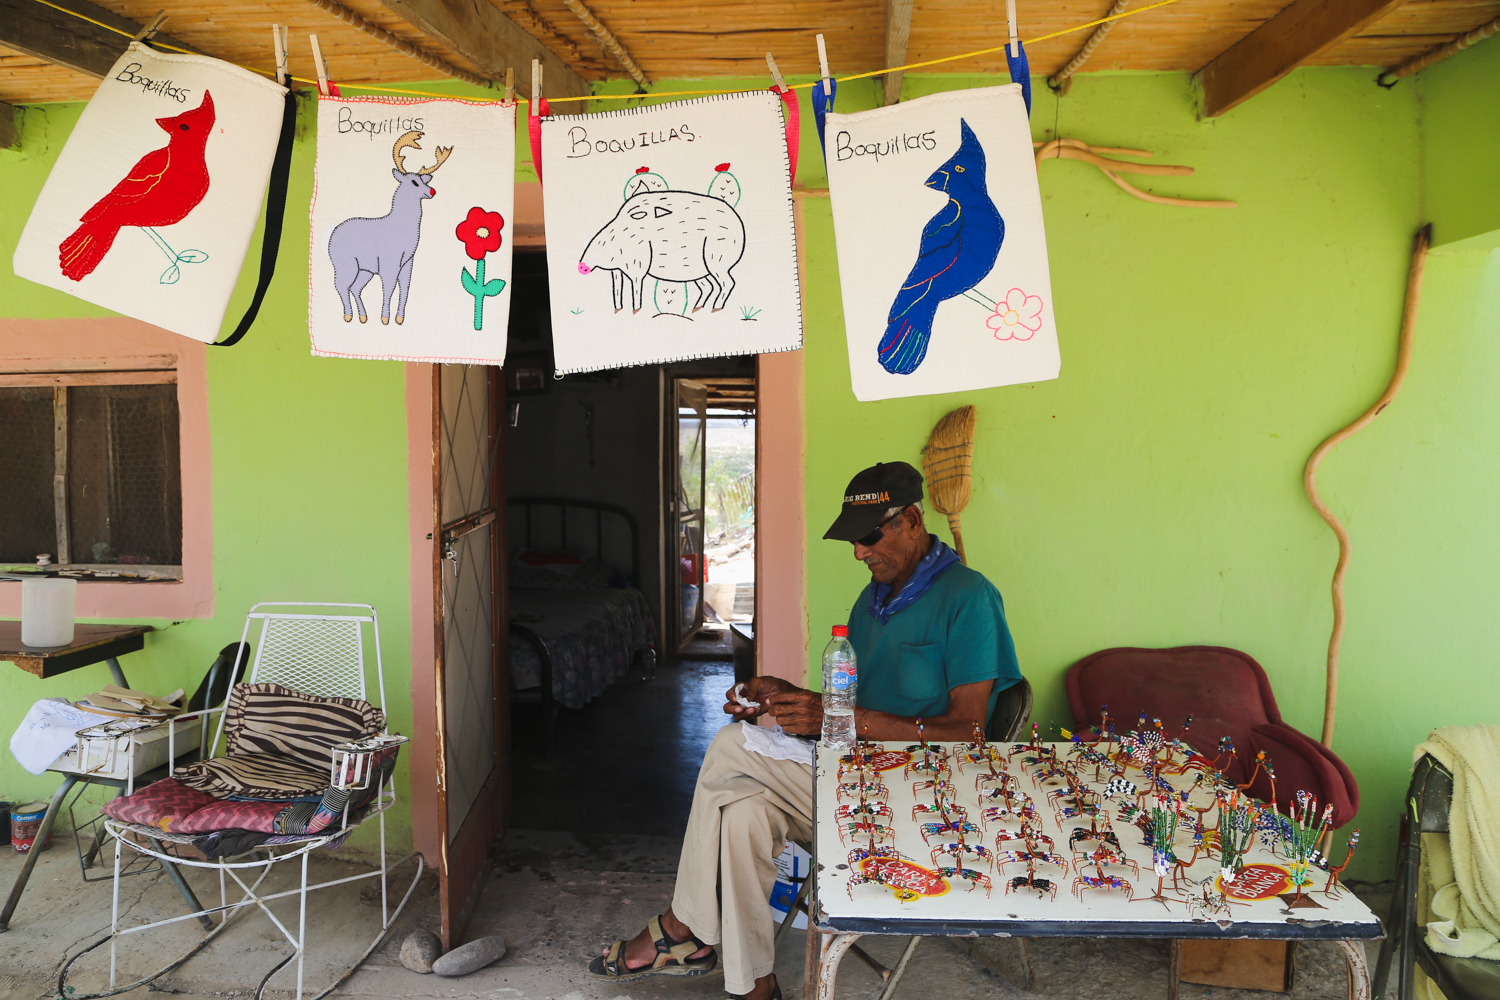 An older man is sitting on a chair on a front porch in front of a table filled with knick knacks for sale in Boquillas Mexico